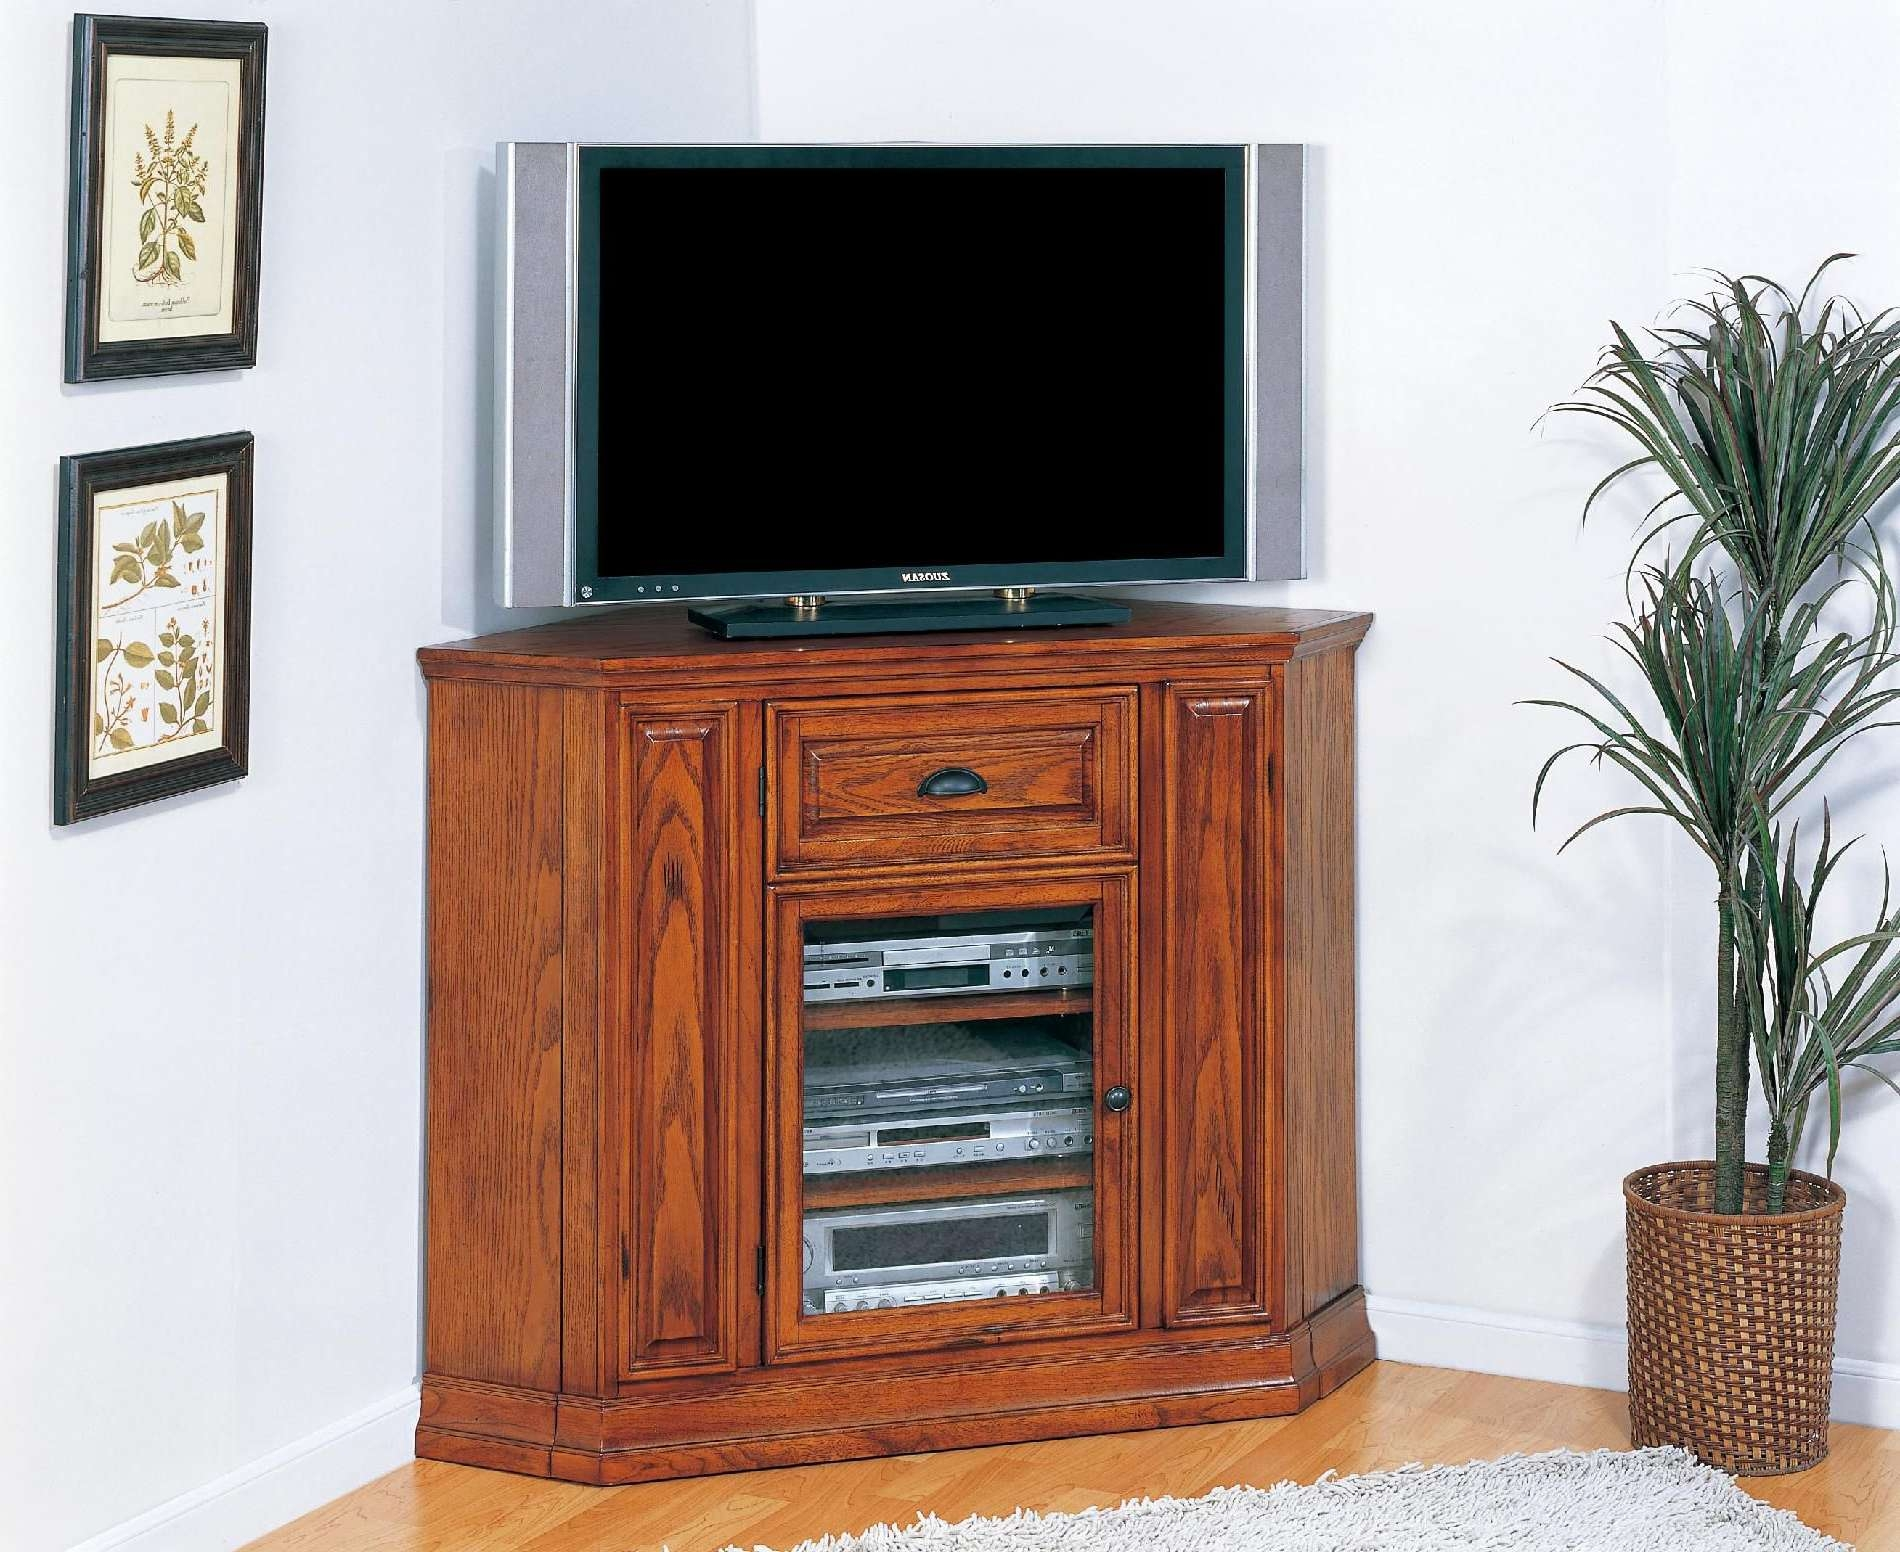 Unique Tall Corner Tv Cabinet